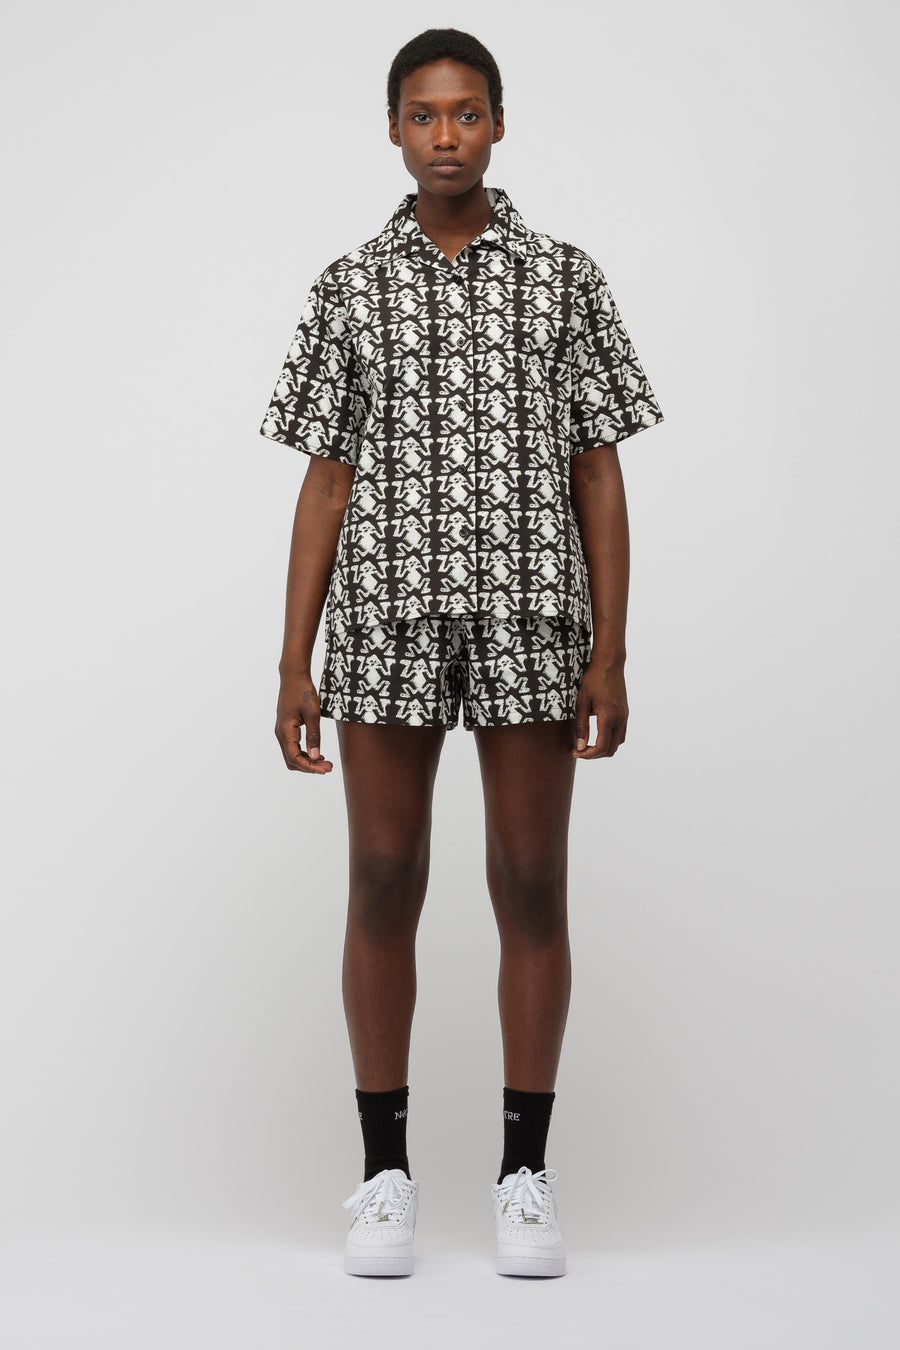 Ashley Williams Tropic Shirt in Artefact - Notre